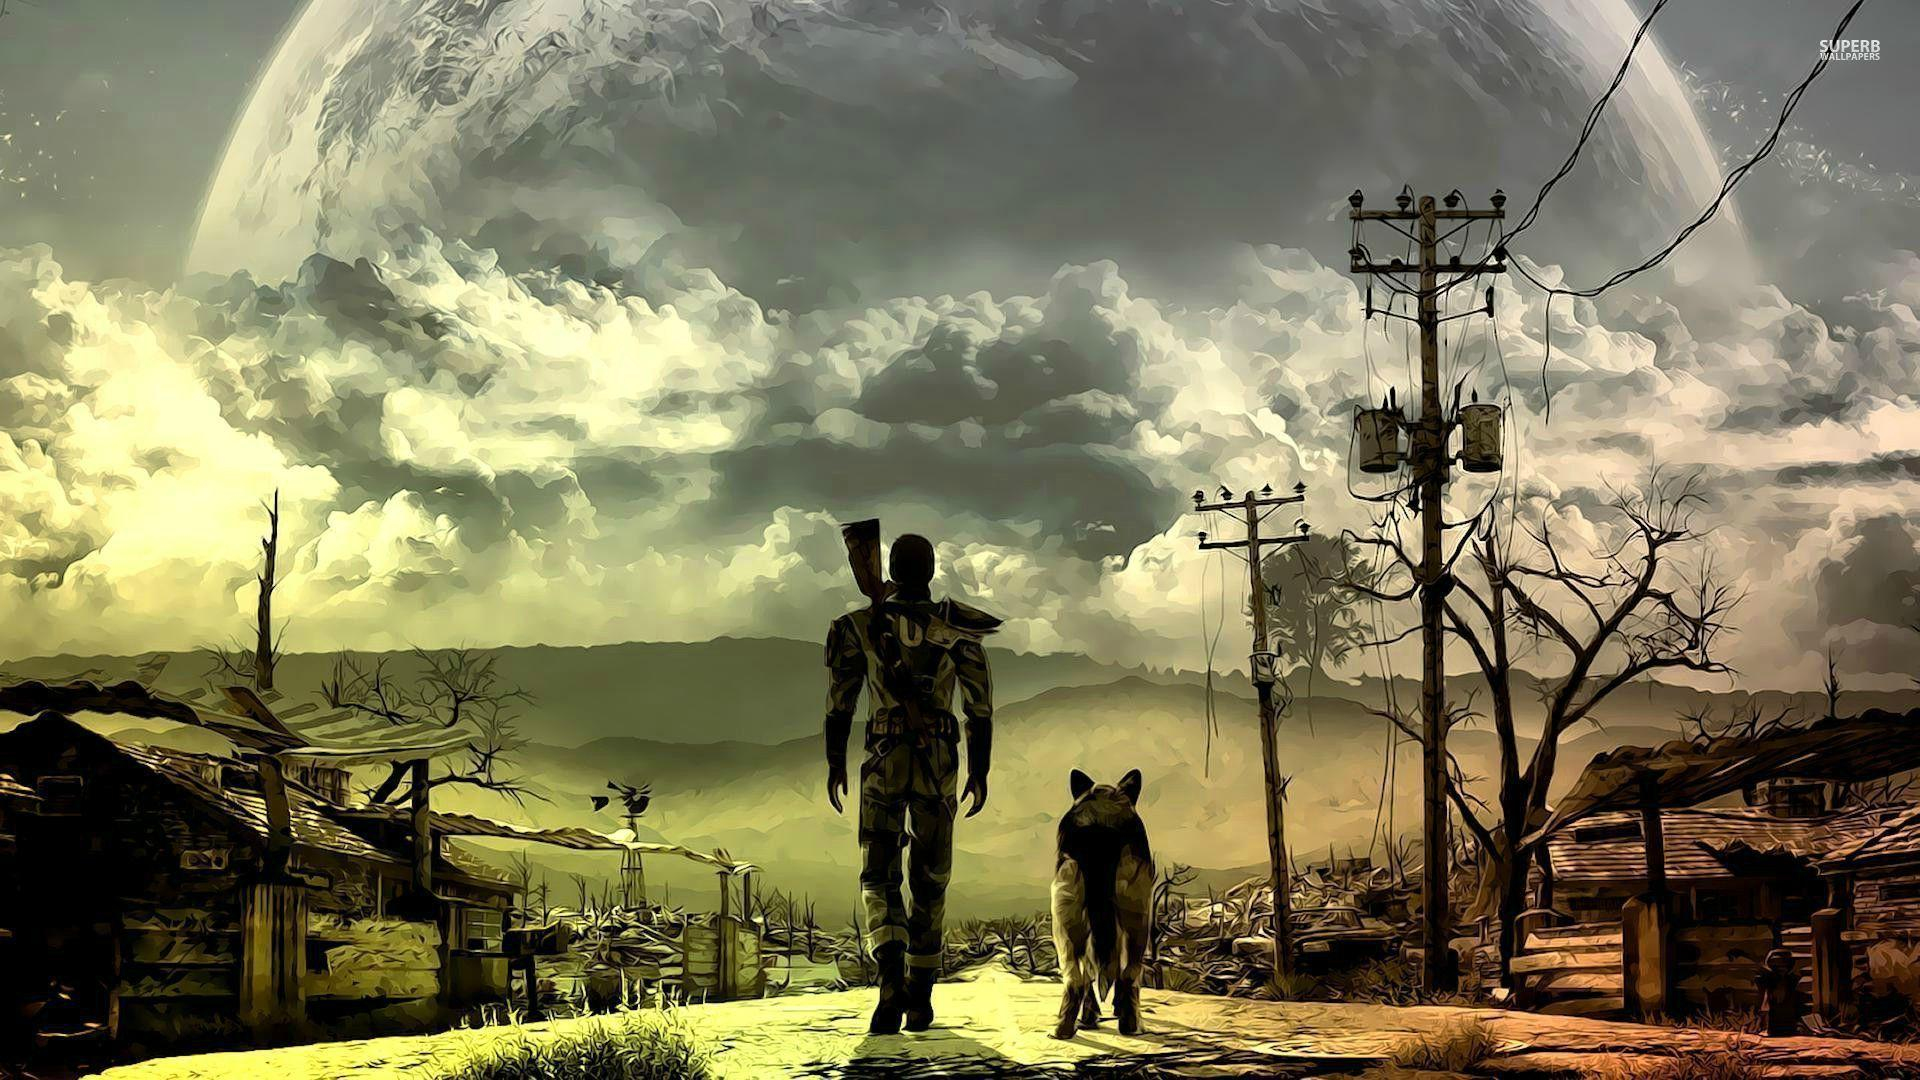 Fallout Wallpapers in 1080p - WallpaperSafari